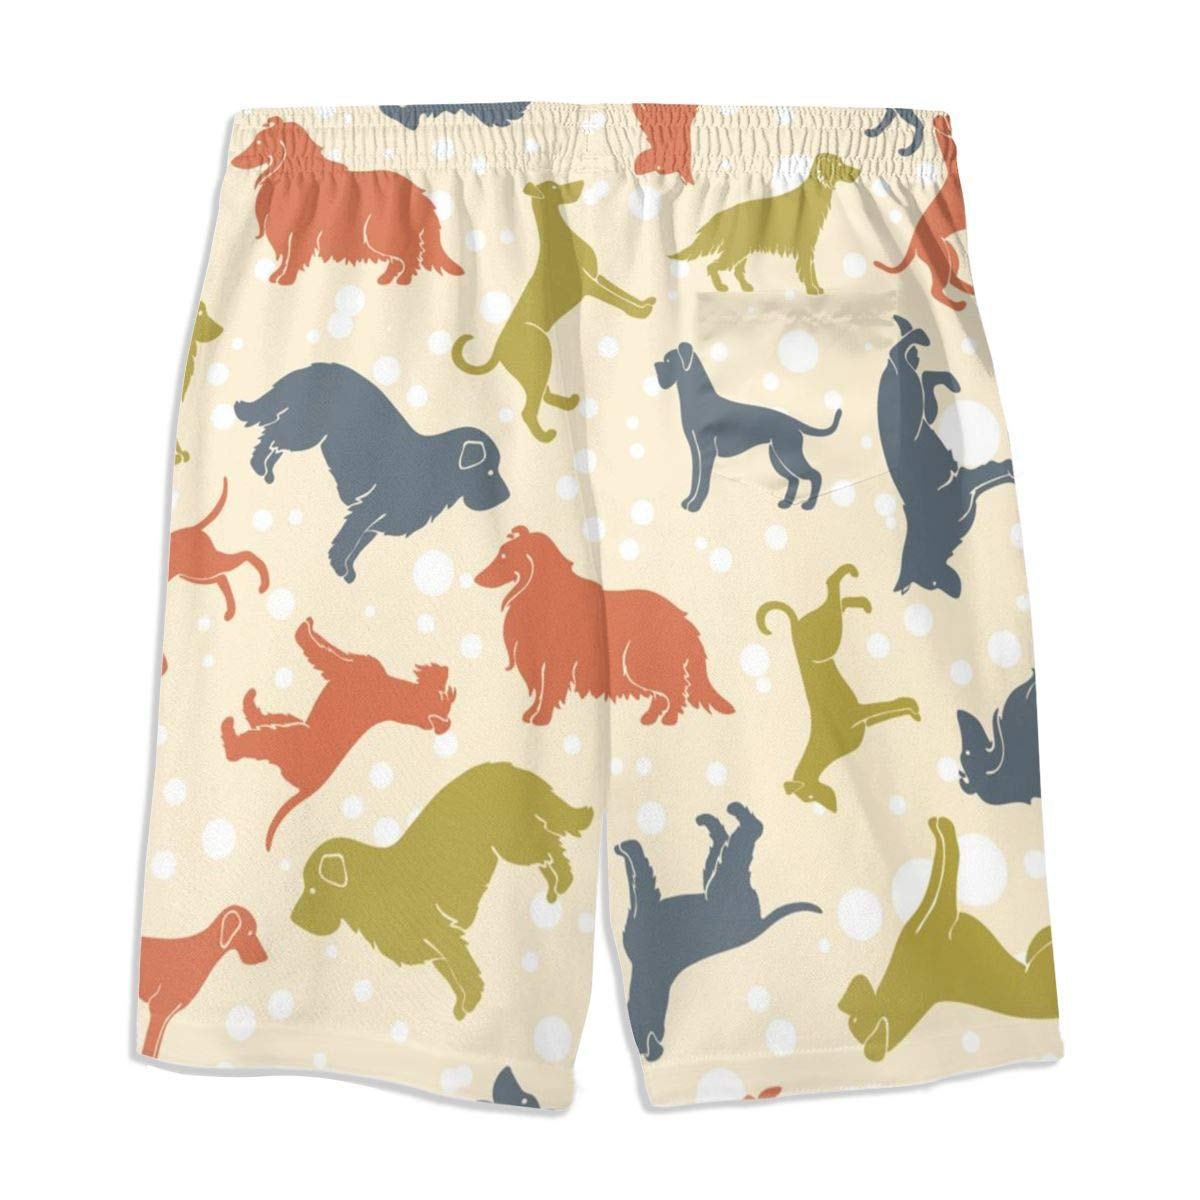 Mens Swim Trunks Boxer Dogs Printed Beach Board Shorts with Pockets Cool Novelty Bathing Suits for Teen Boys